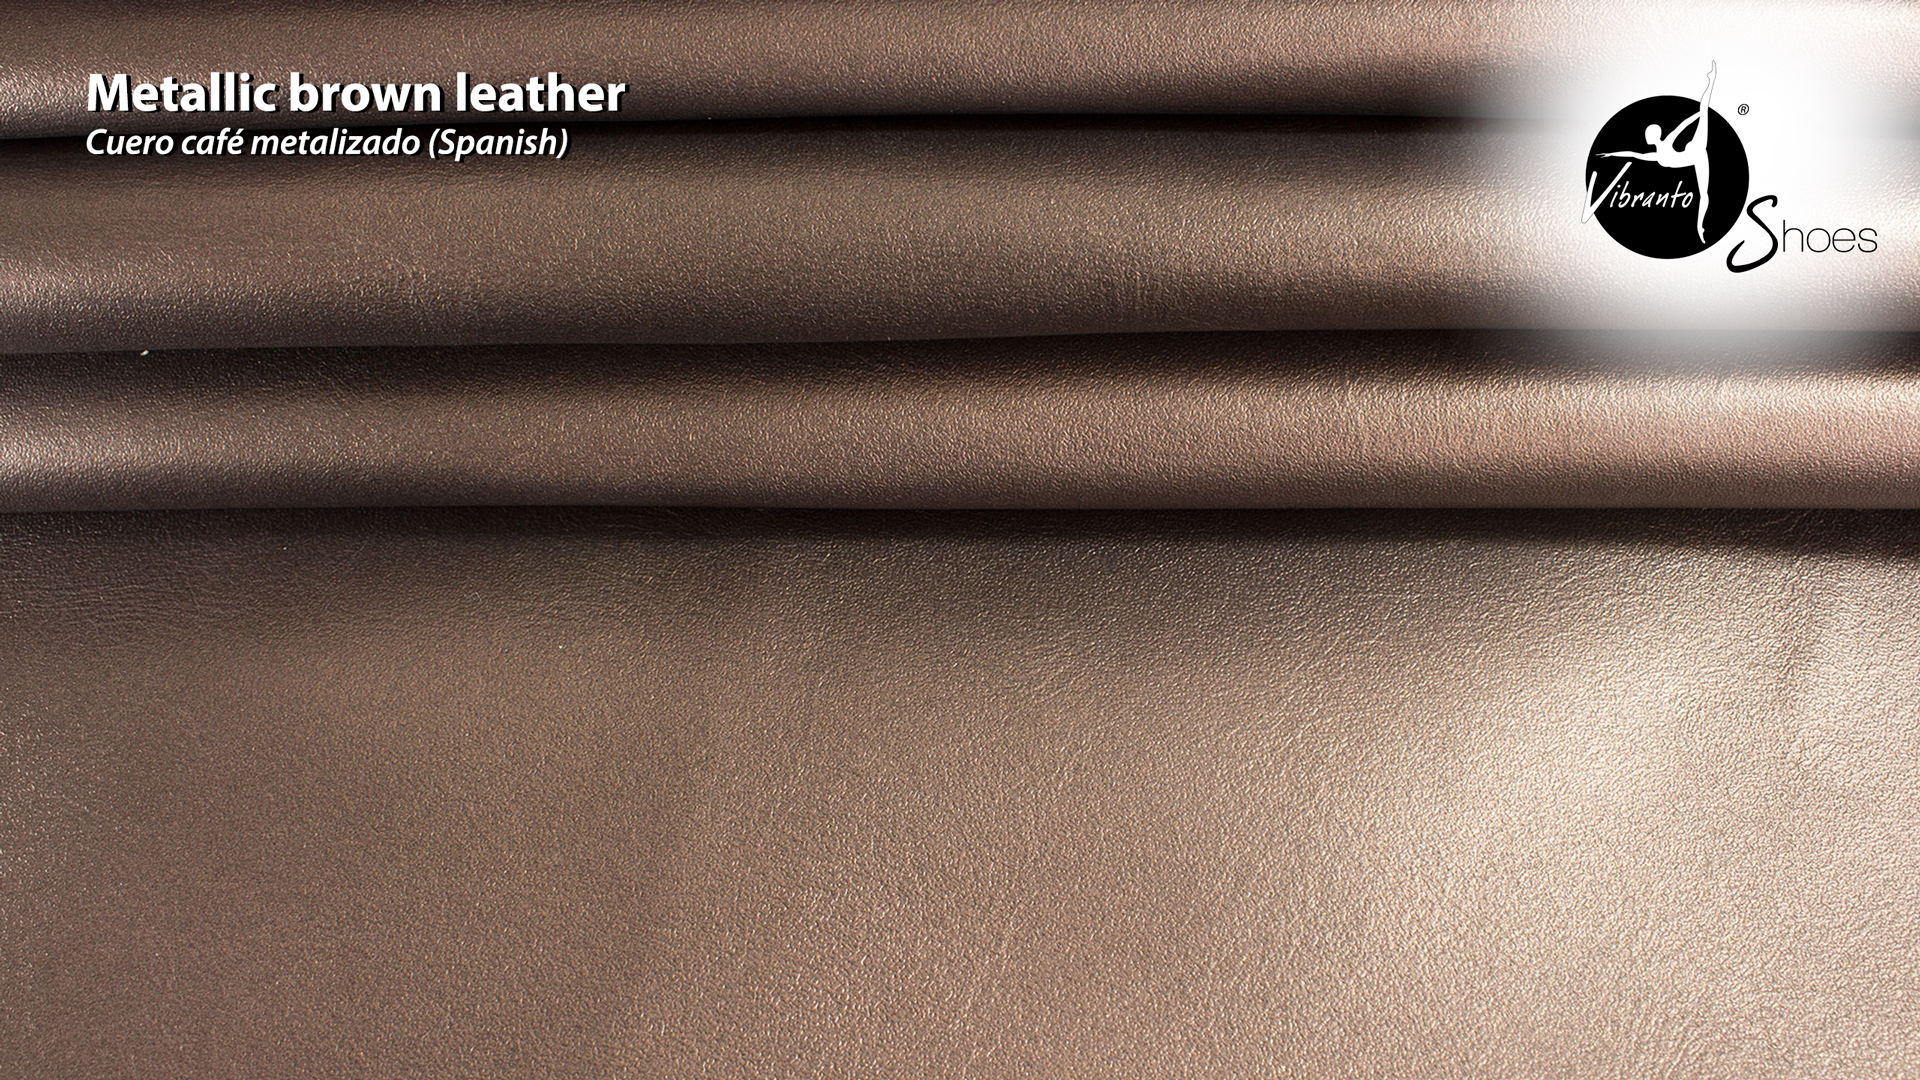 Metallic brown leather material Vibranto Shoes